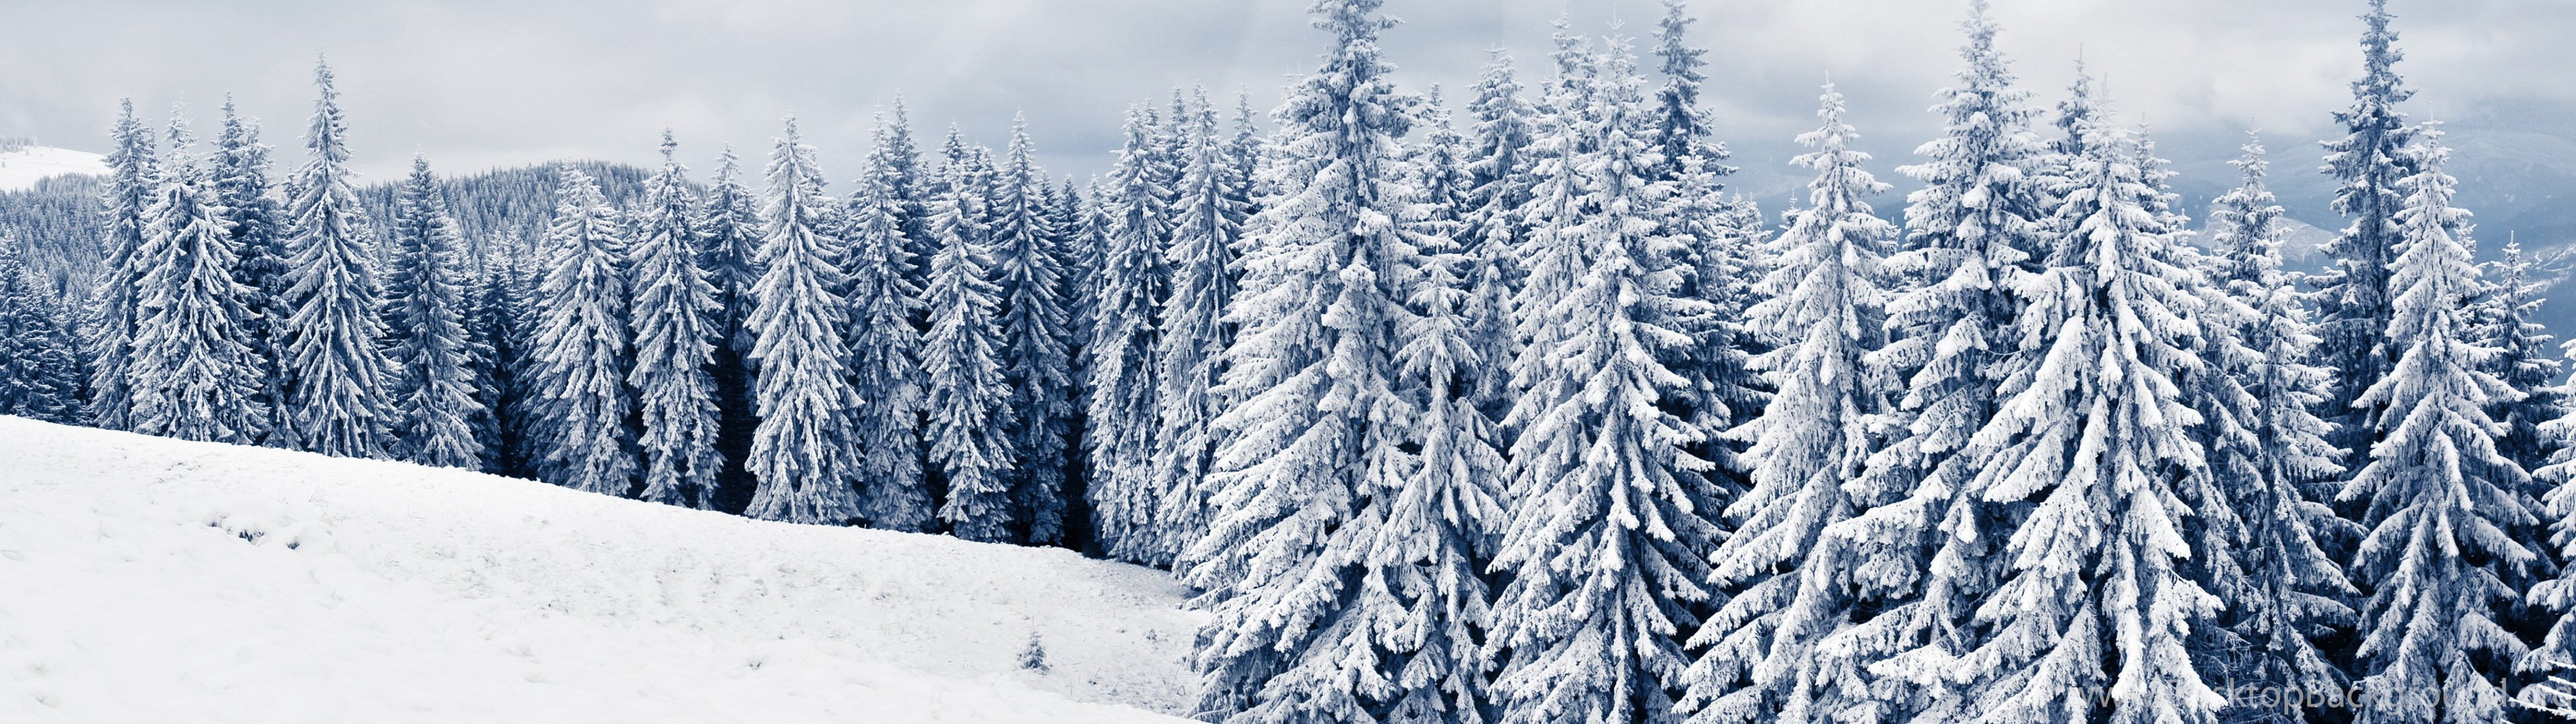 winter hd desktop wallpapers high definition